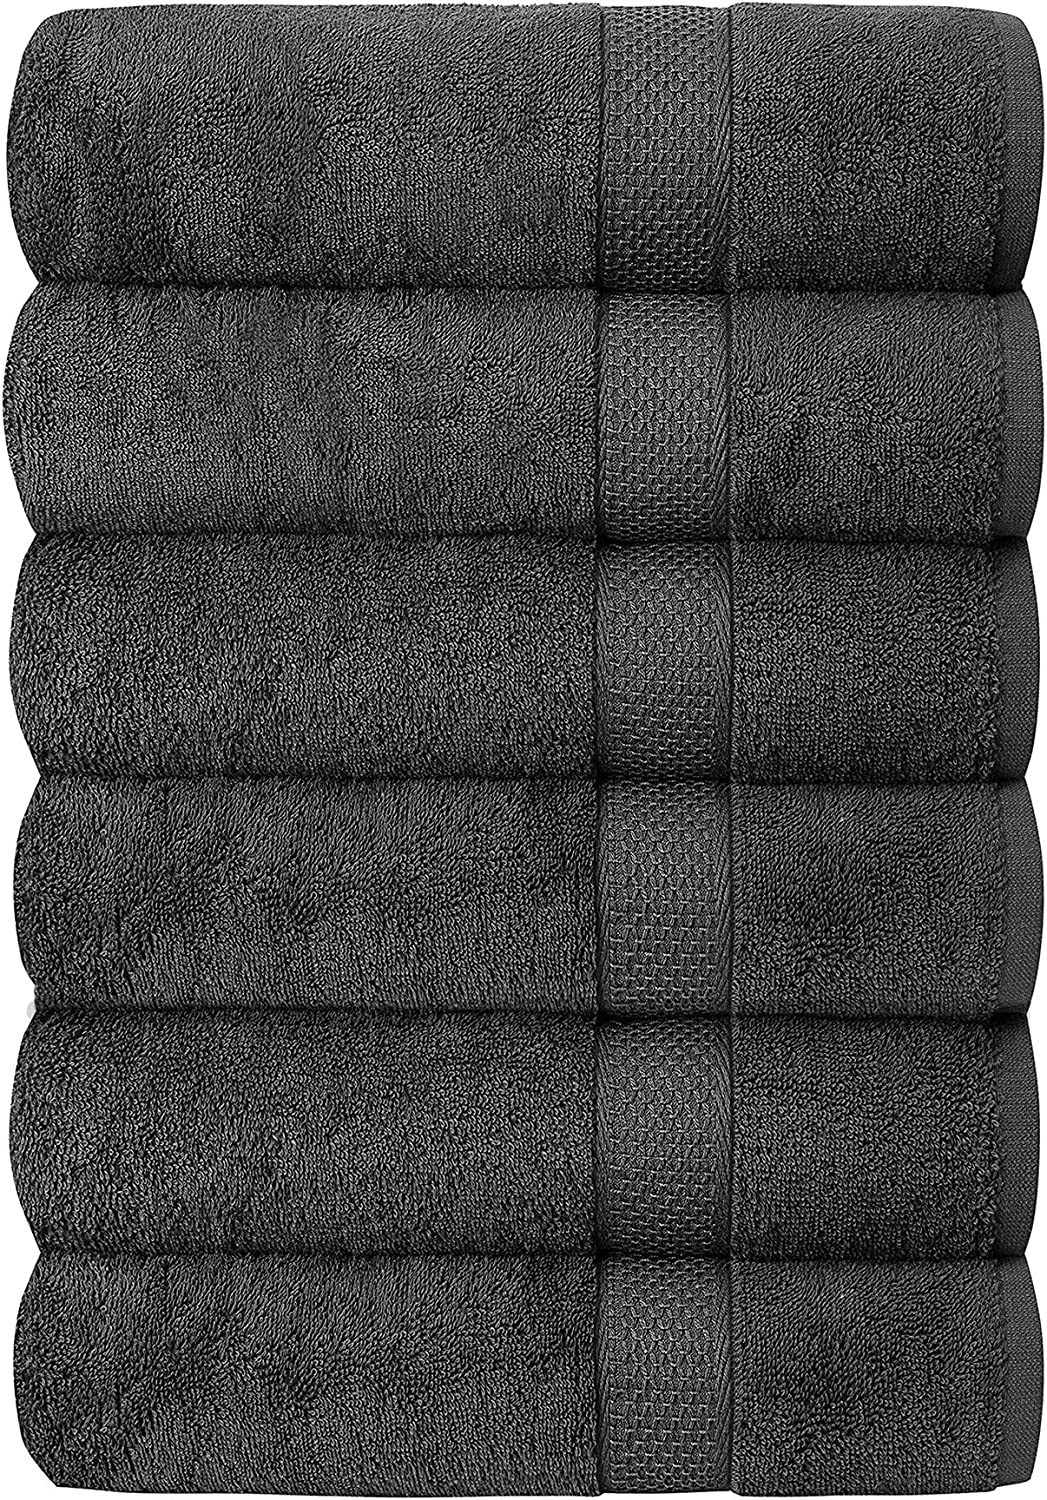 Quba Linen Luxury Hotel /& Spa 100/% Cotton Premium Bath Towels Set of 6-24x48 inch Ultra Soft Large Bath Towel Set Highly Absorbent Daily Usage Ideal for Pool and Gym Pack of 6